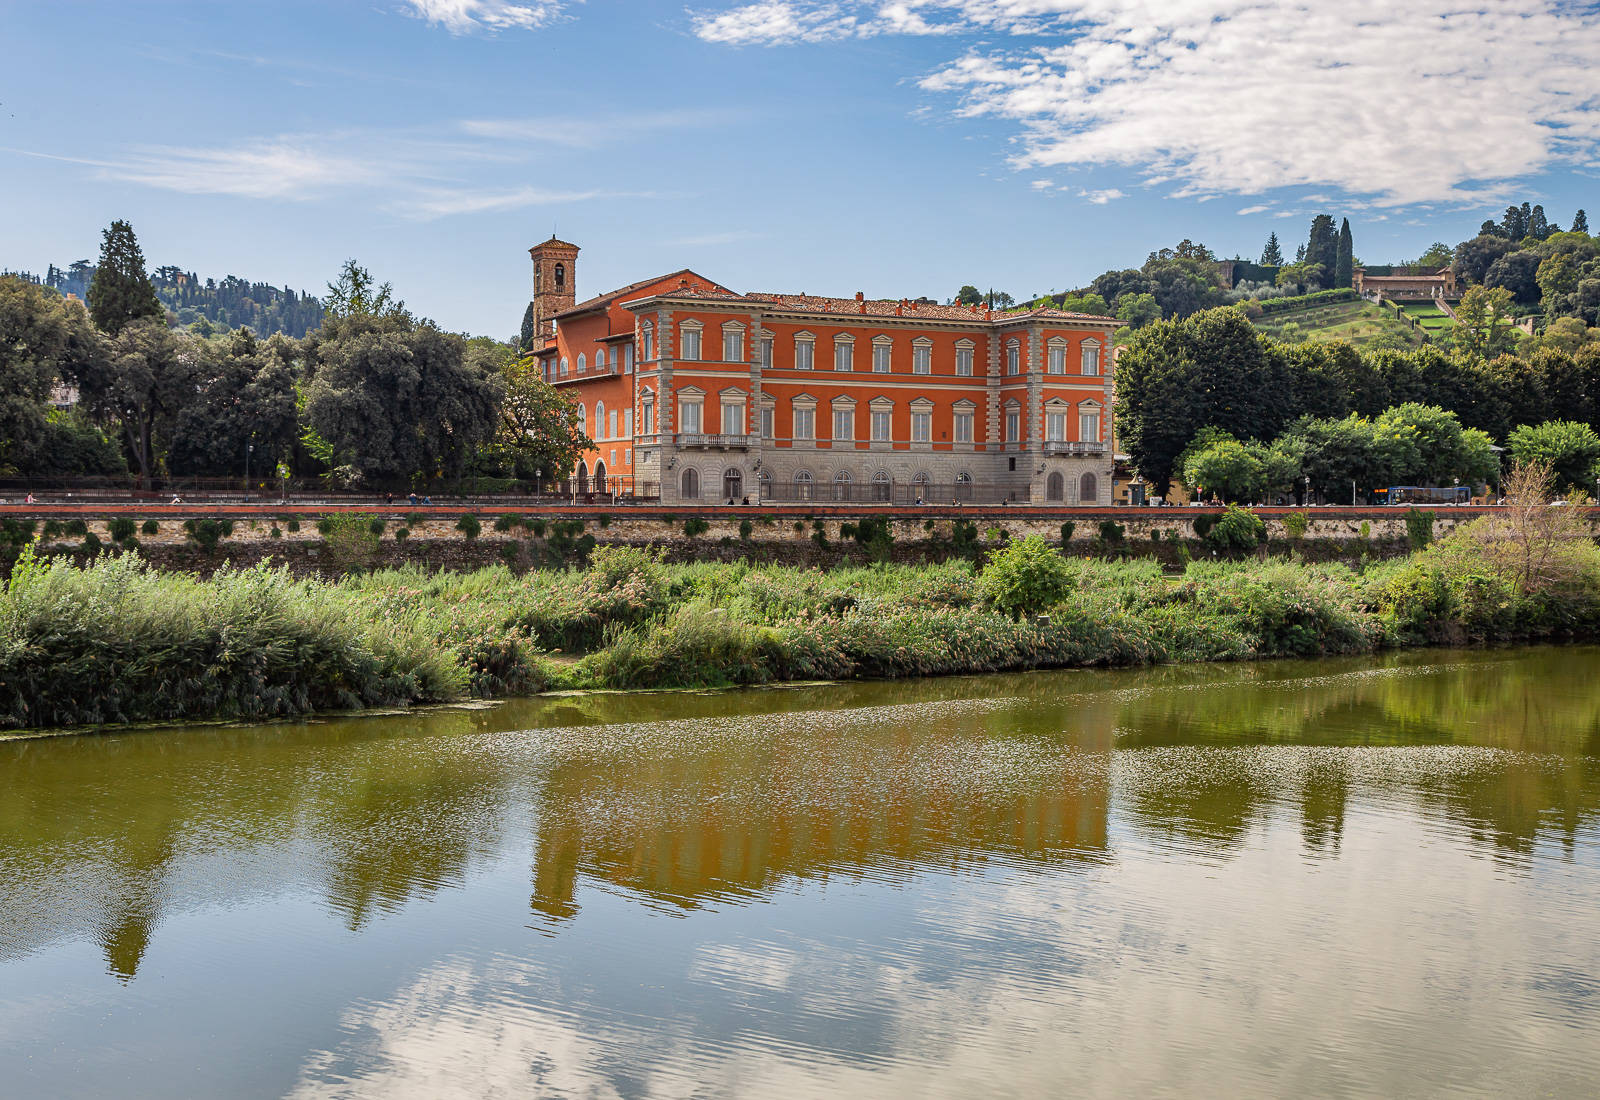 Apartment building for sale by Florence's river Arno